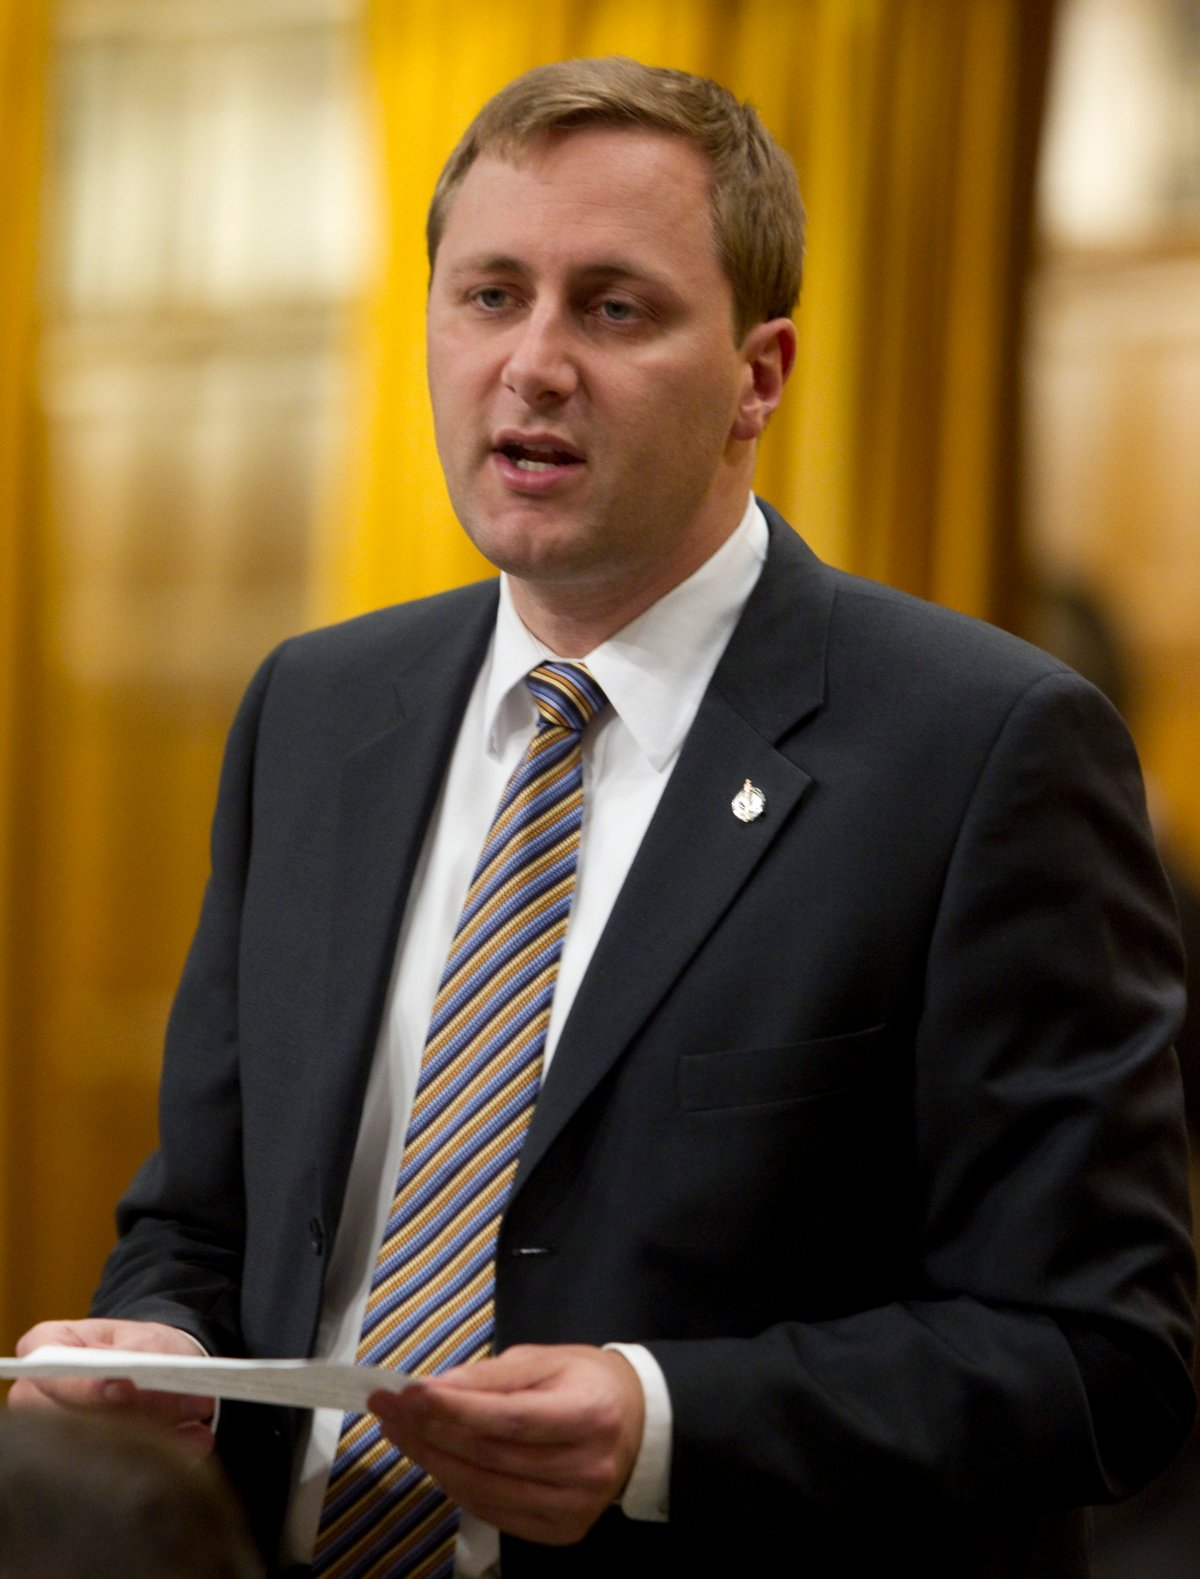 Conservative MP Brad Trost rises in the House of Commons on Parliament Hill in Ottawa, Thursday February 17, 2011.